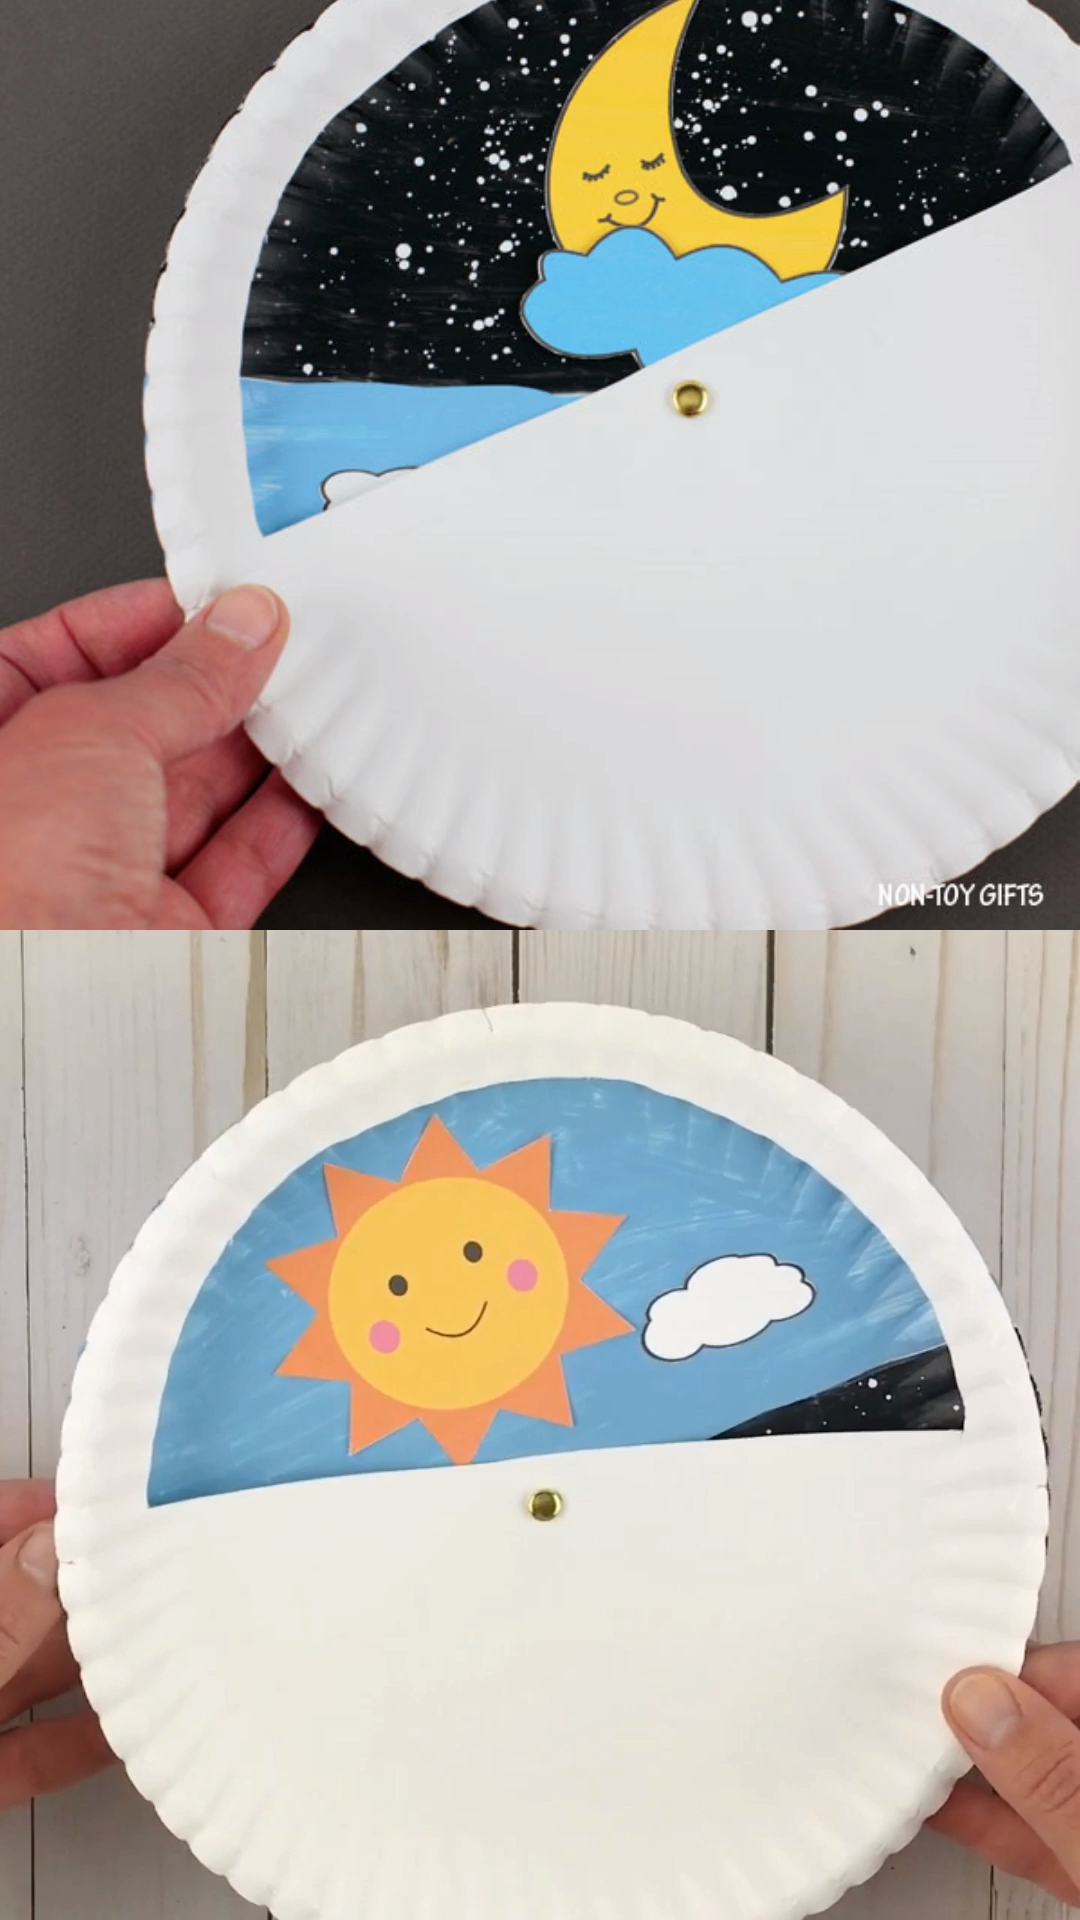 Day and night paper plate for kids. Make this educational paper plate wheel craft with preschoolers and talk about daytime and